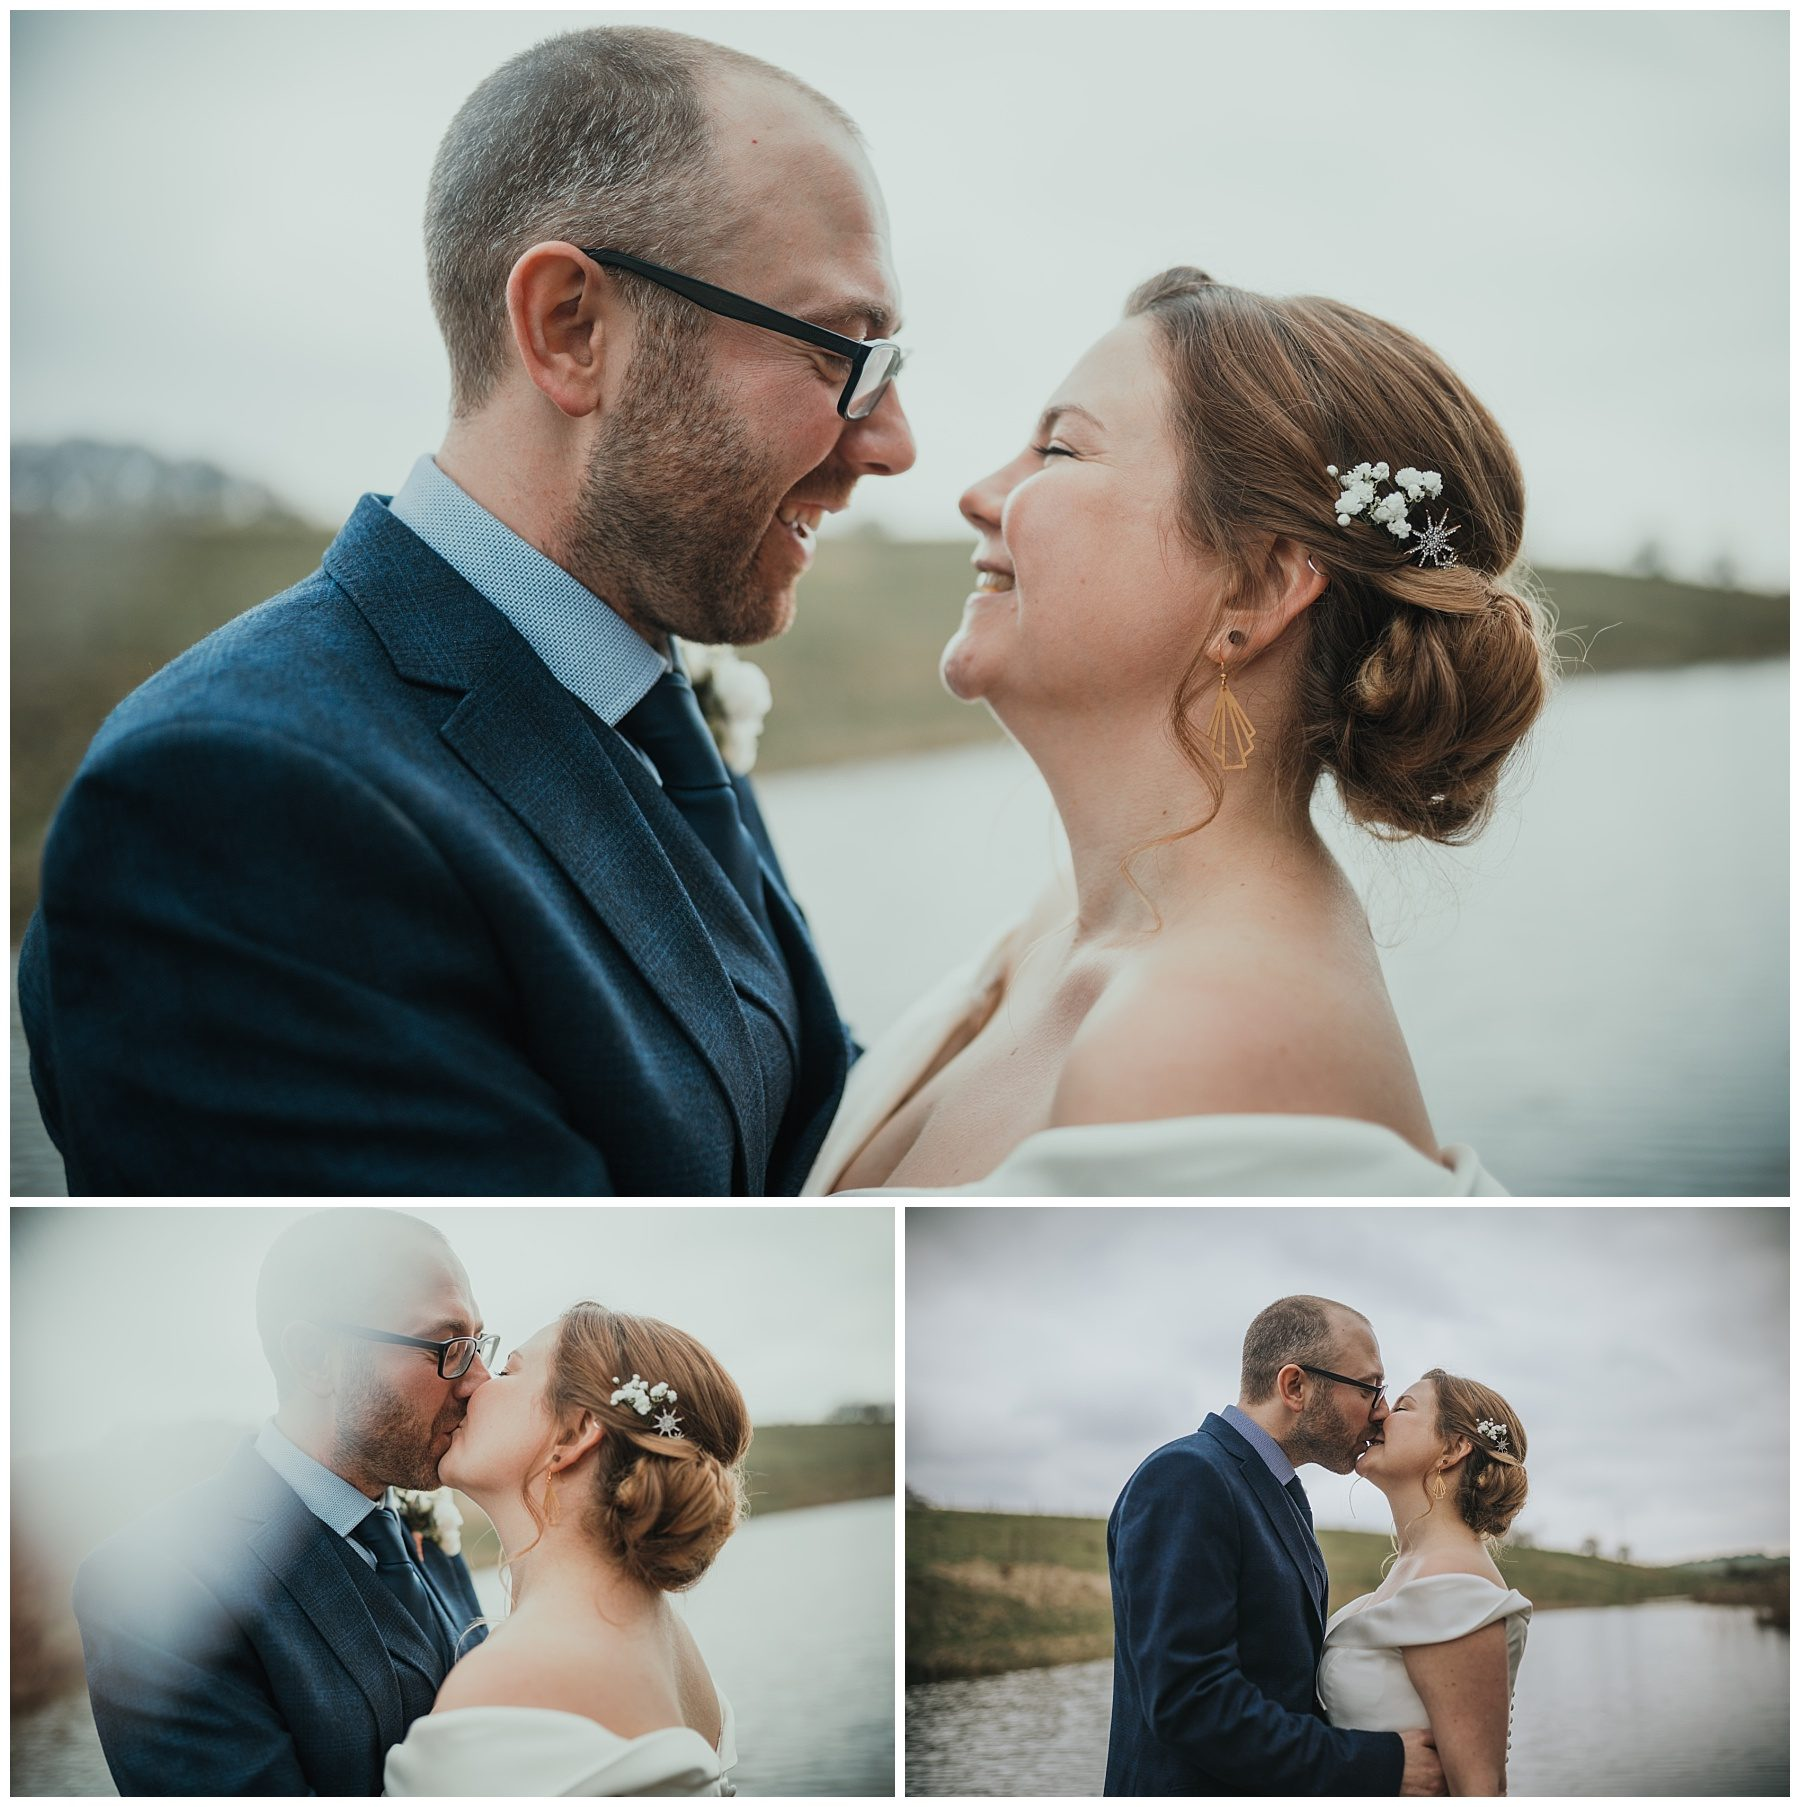 Bride and groom kiss next to a lake